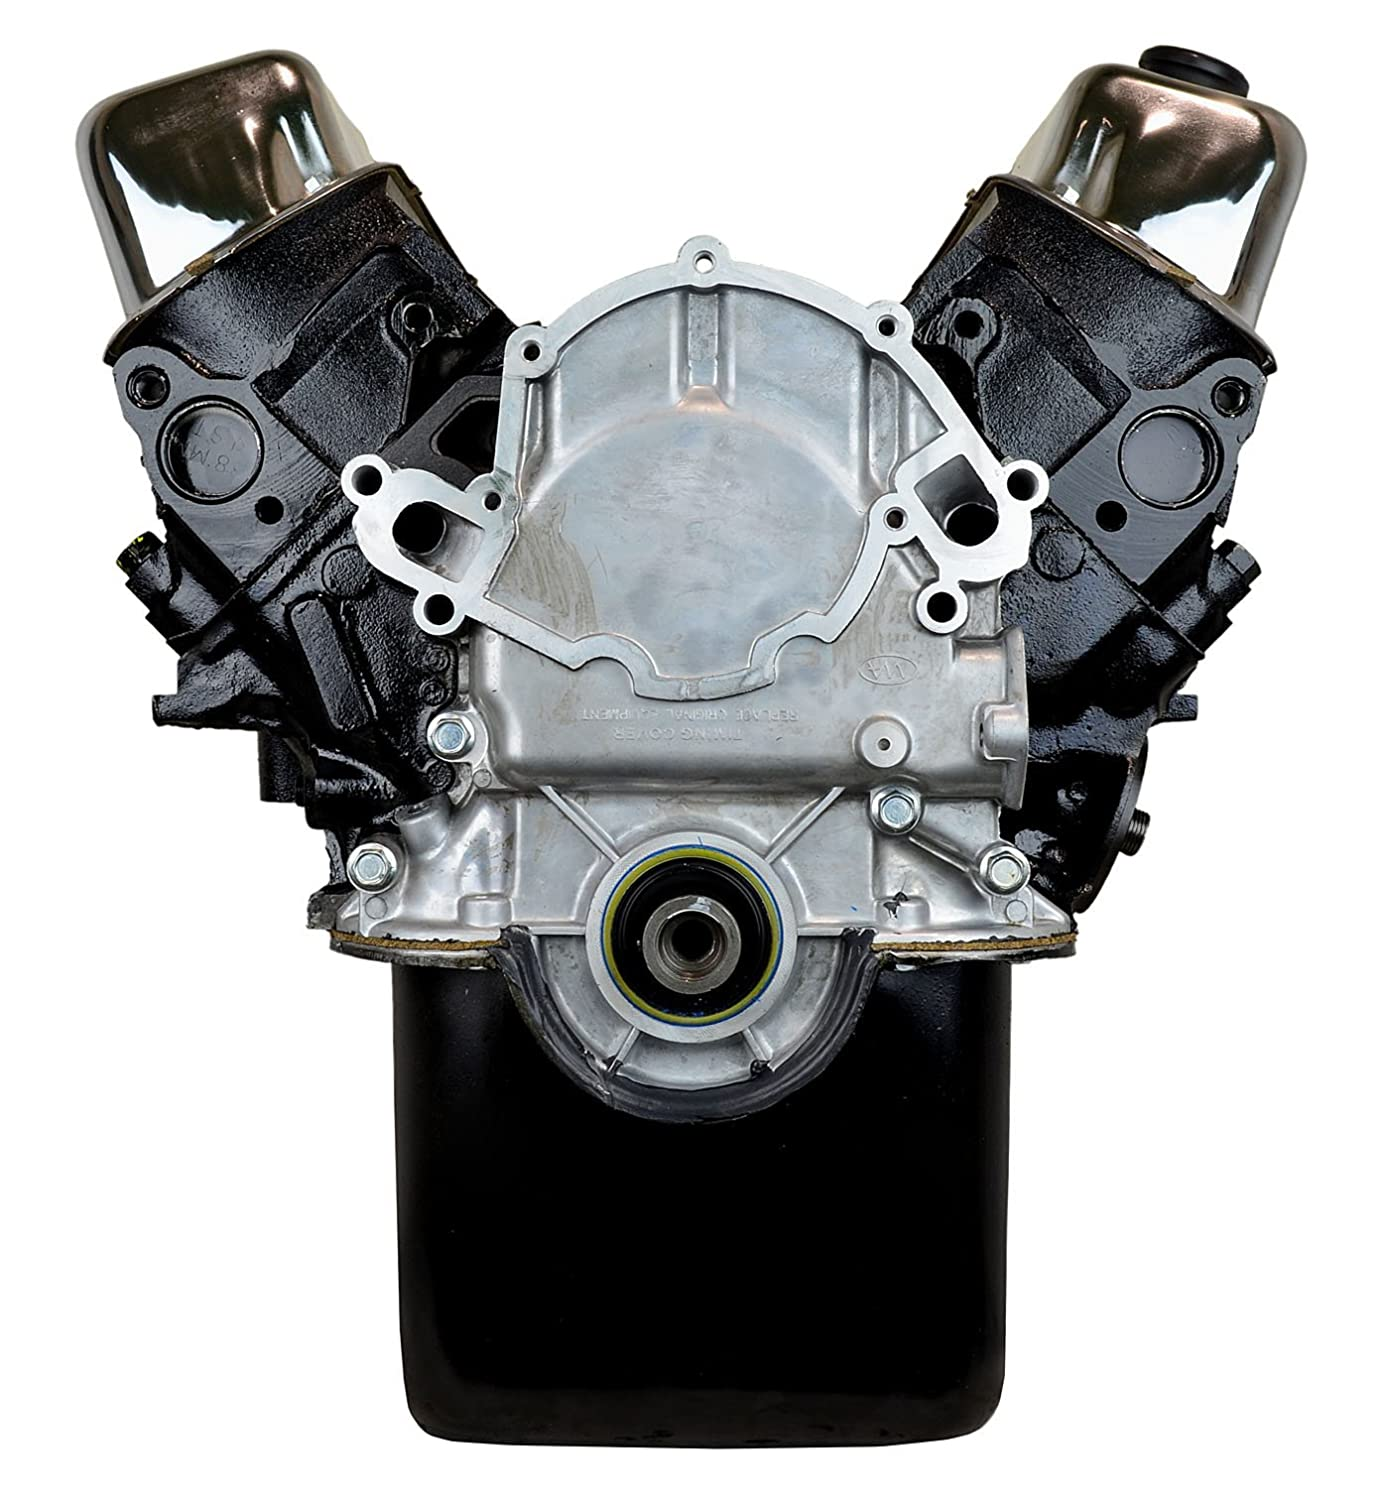 PROFessional Powertrain VF10 Ford 302 Complete Engine, Remanufactured PROFormance Powertrain